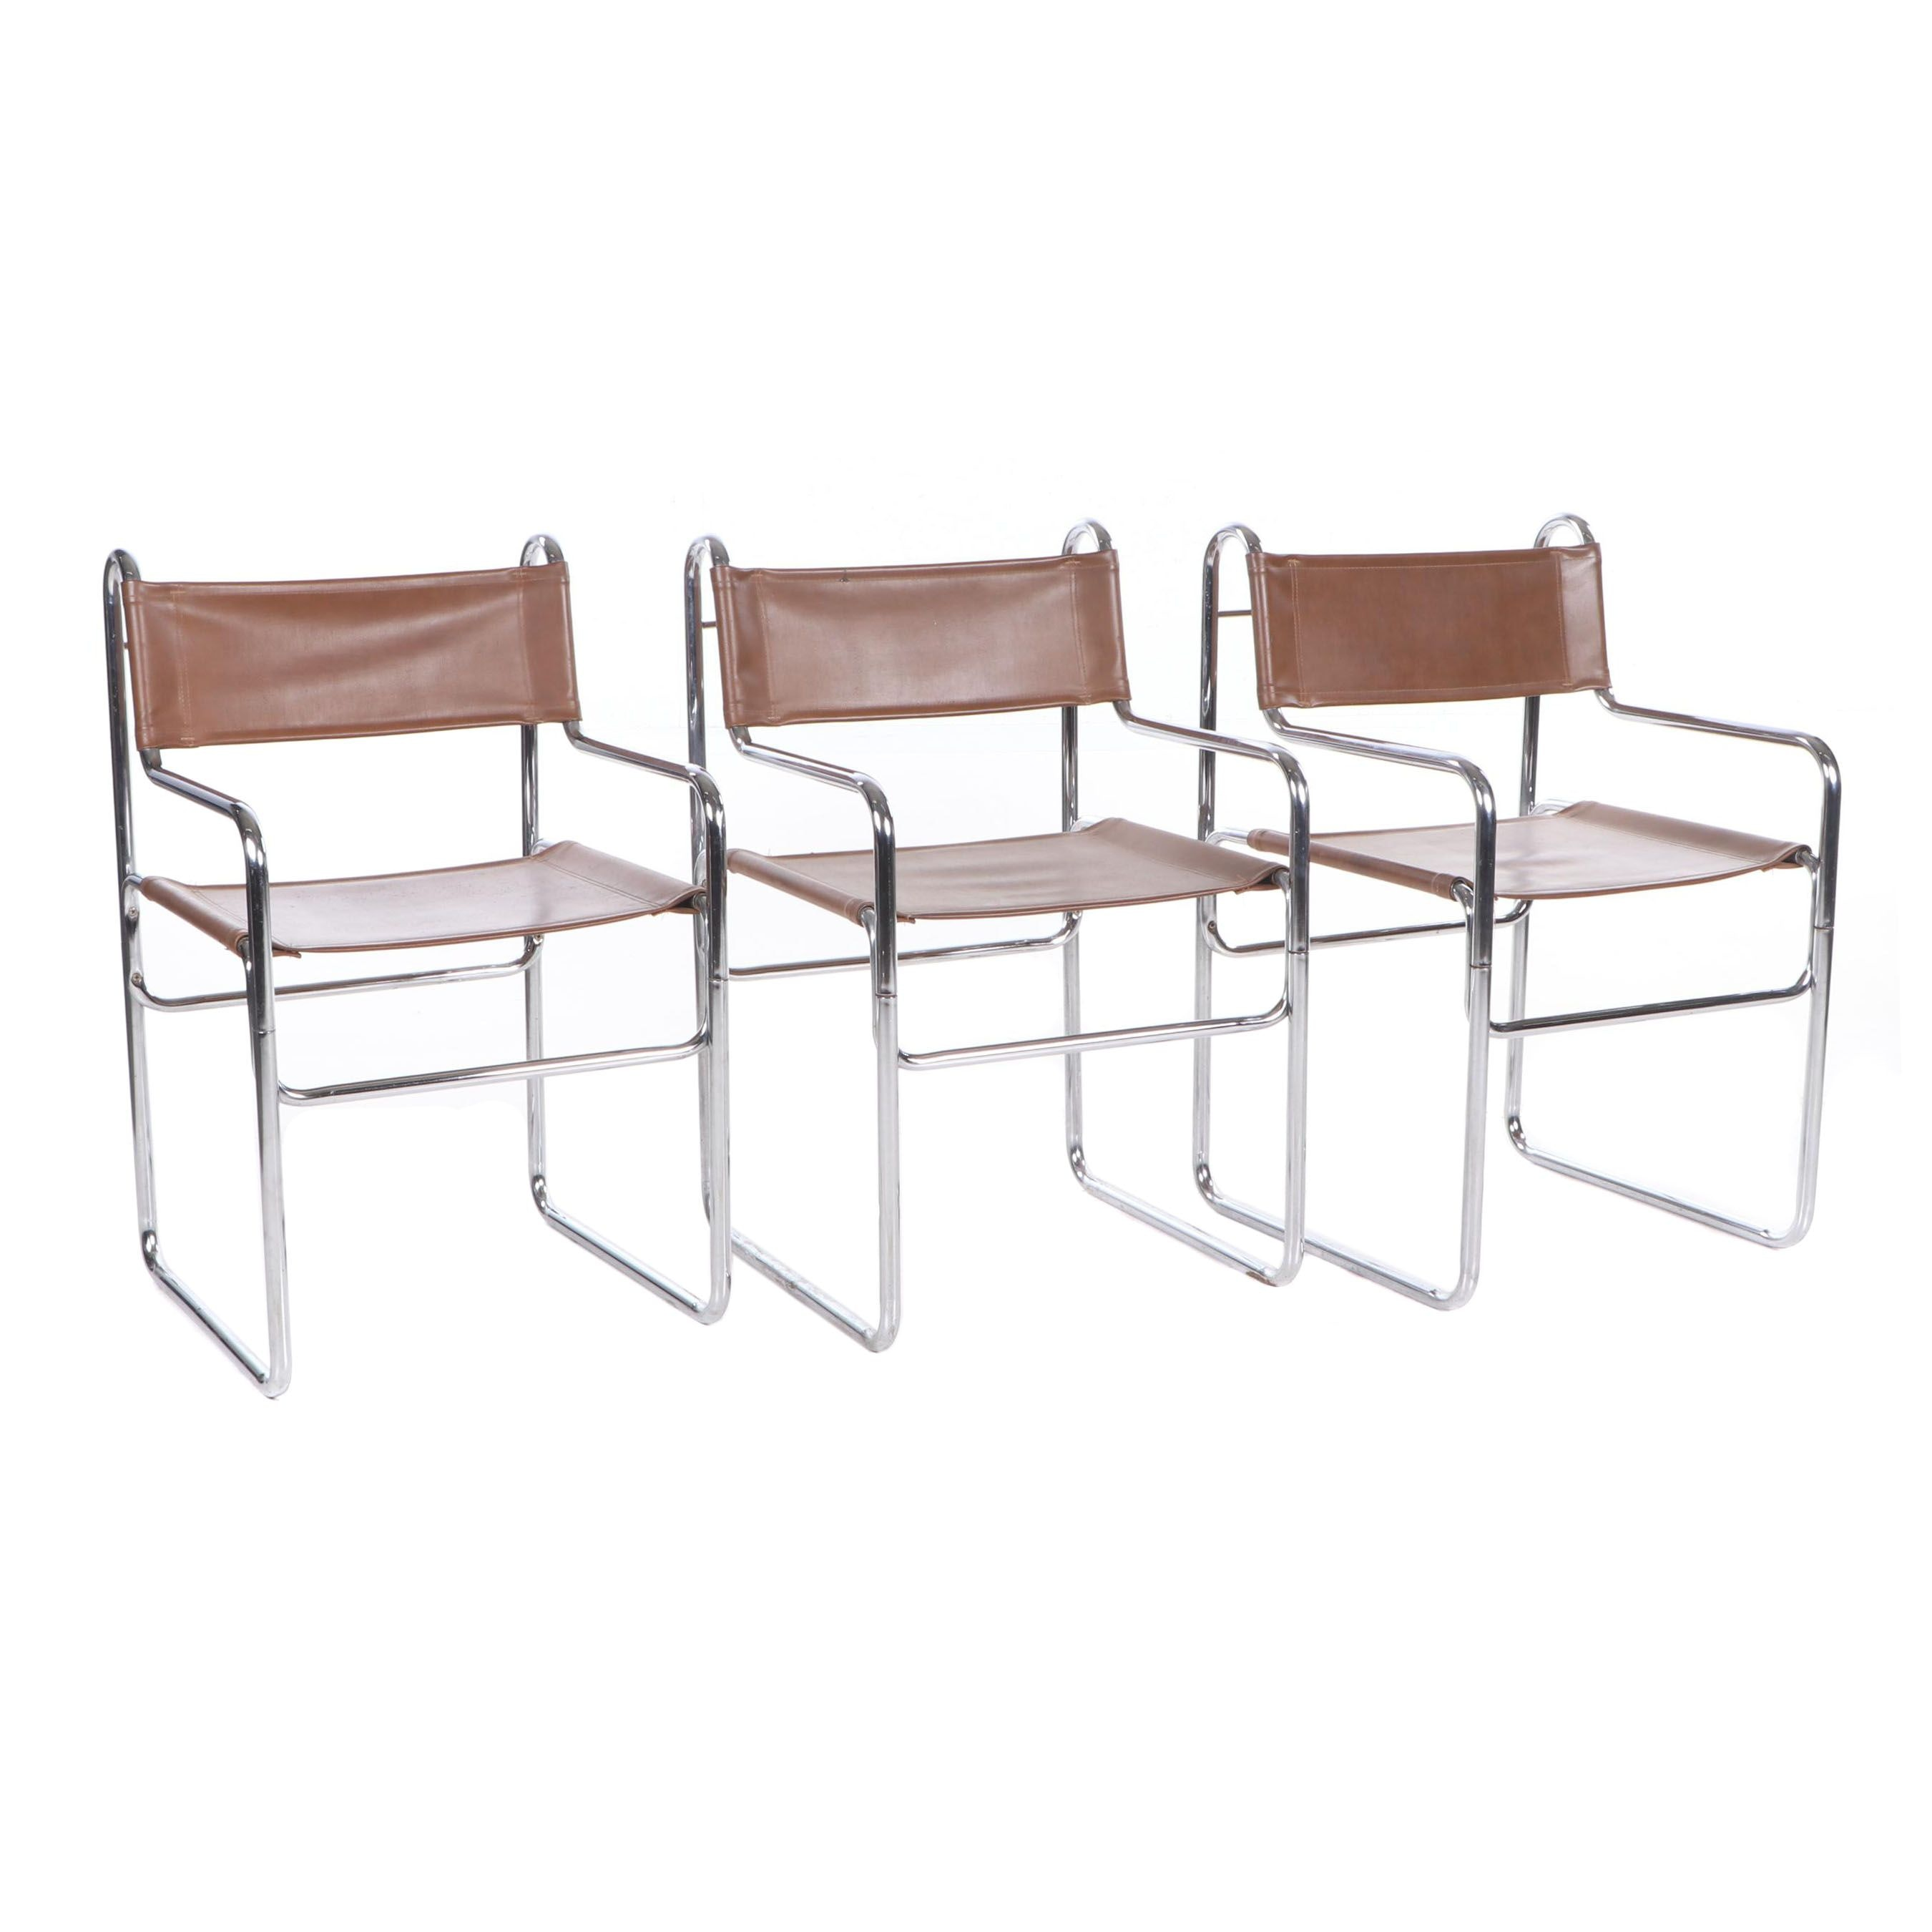 Mid-Century Mies van der Rohe Style Chrome and Leatherette Cantilever Chairs